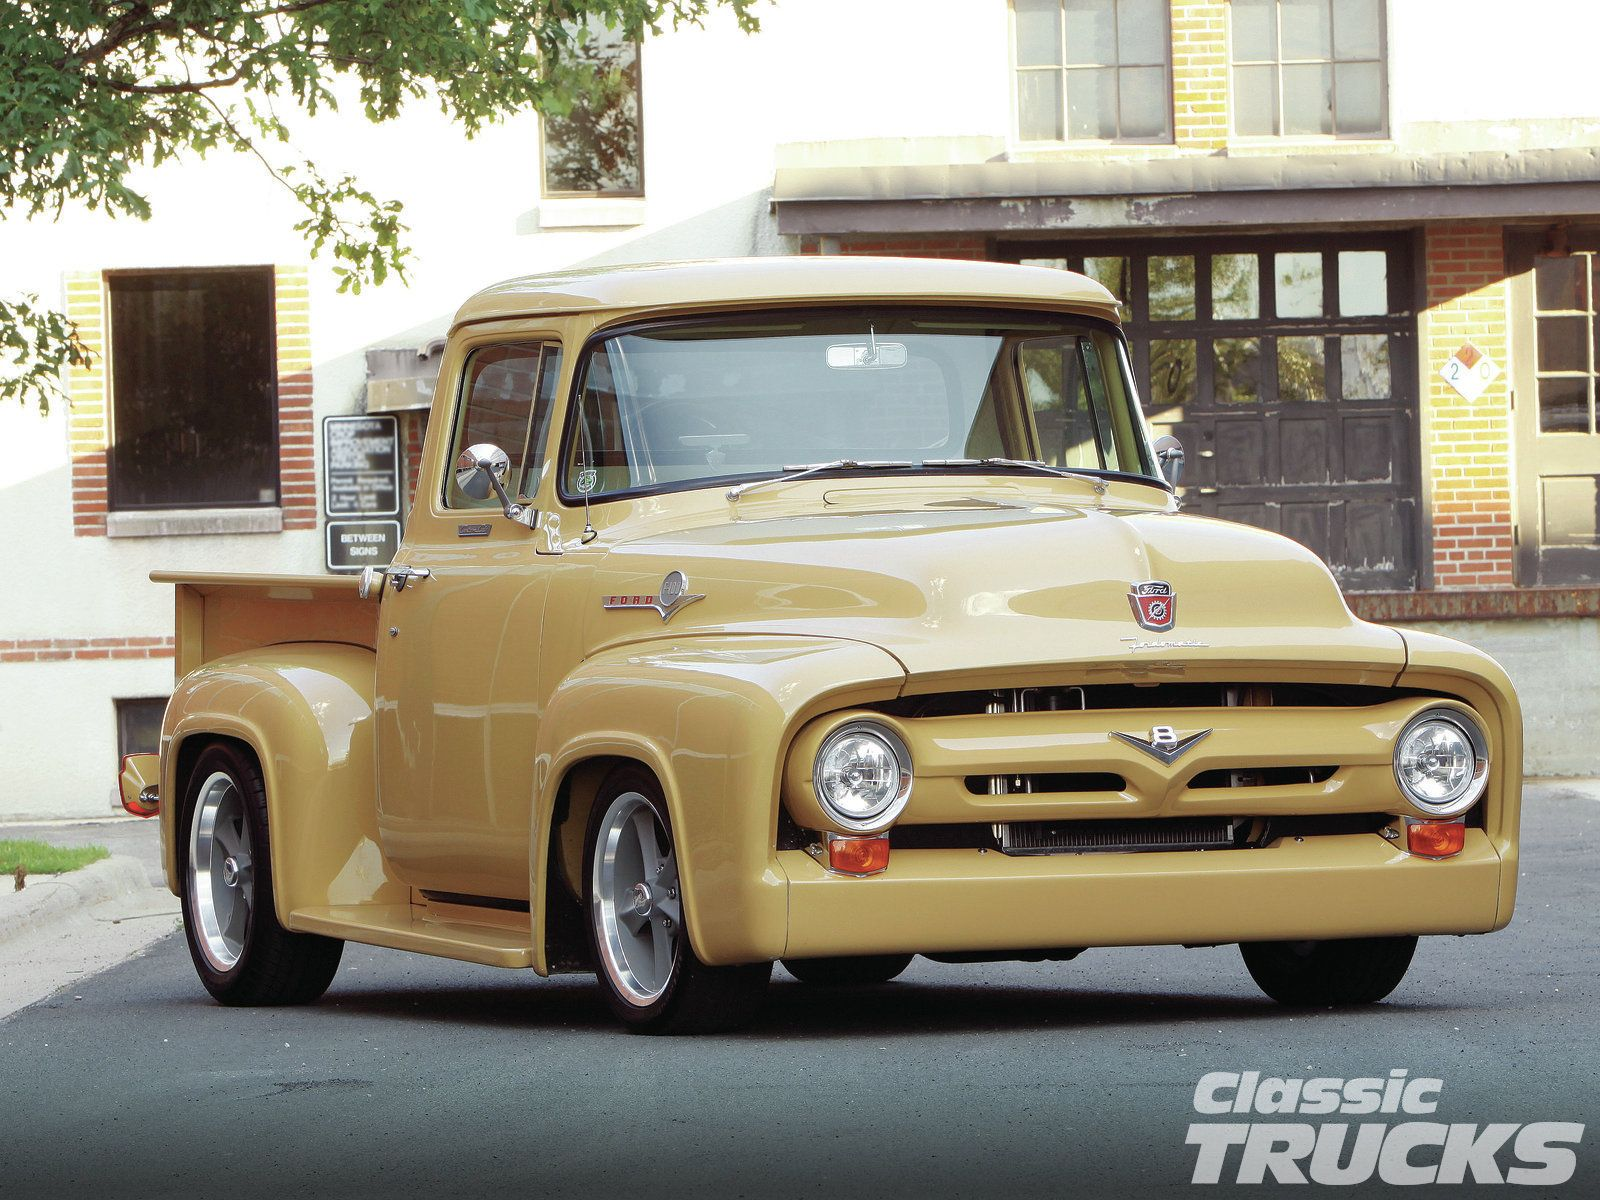 1955 ford f100 trucks for sale used cars on oodle autos post - 1000 Images About Carros On Pinterest Chevy Vw Beetles And Chevy C10